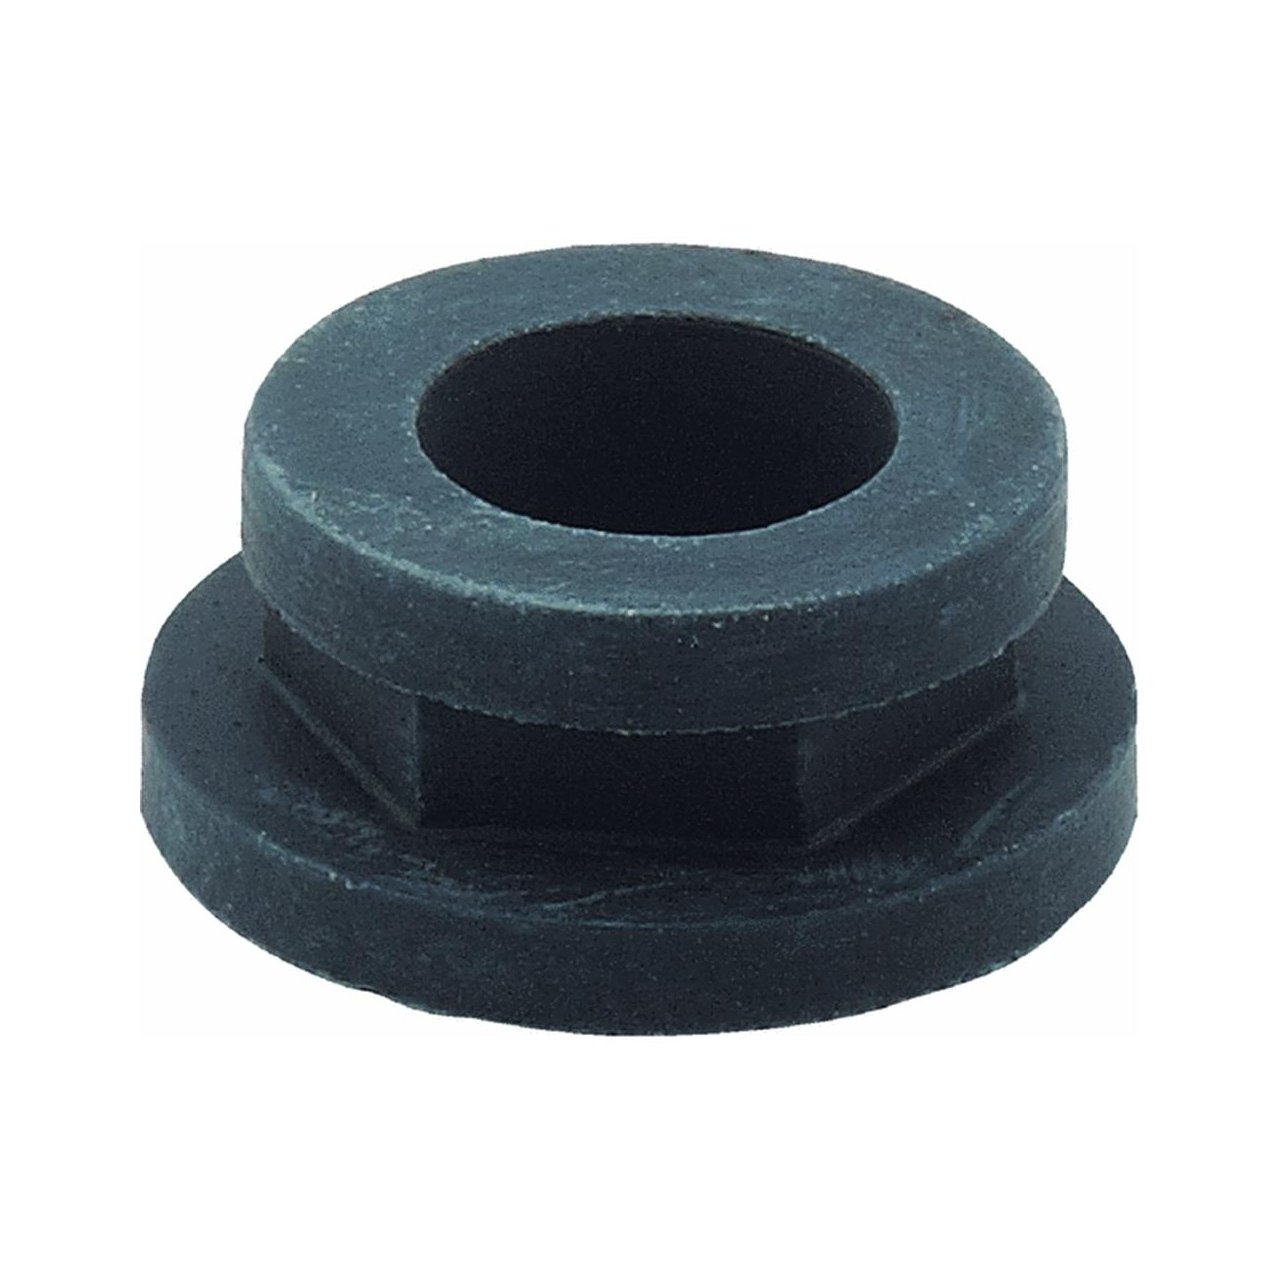 National Presto 33136 Rubber Pressure Cooker Adapter